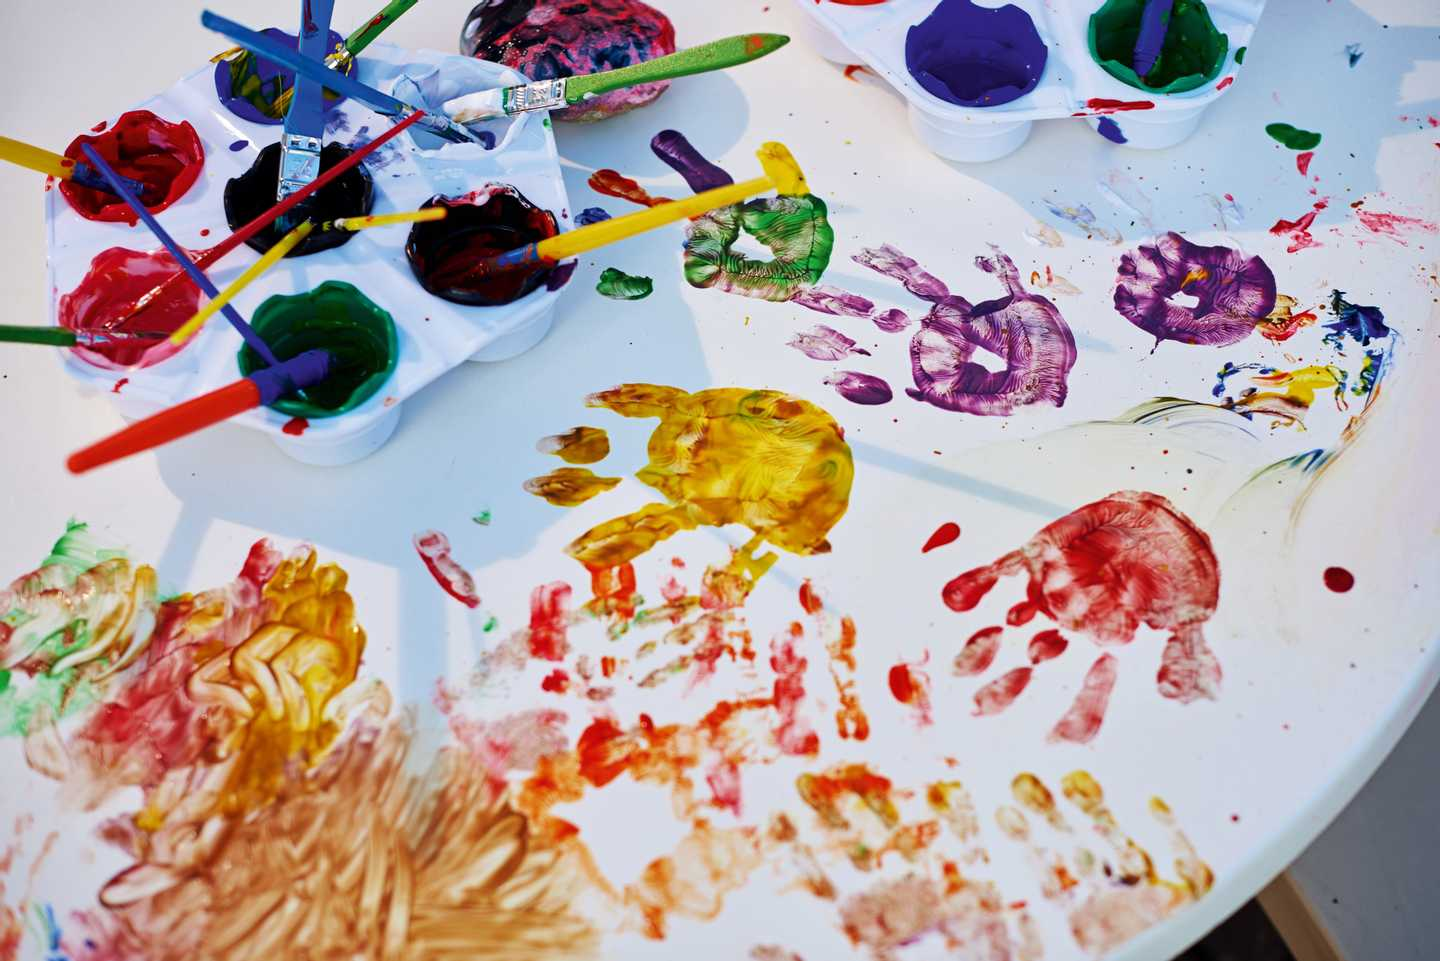 Paints and hand prints on table